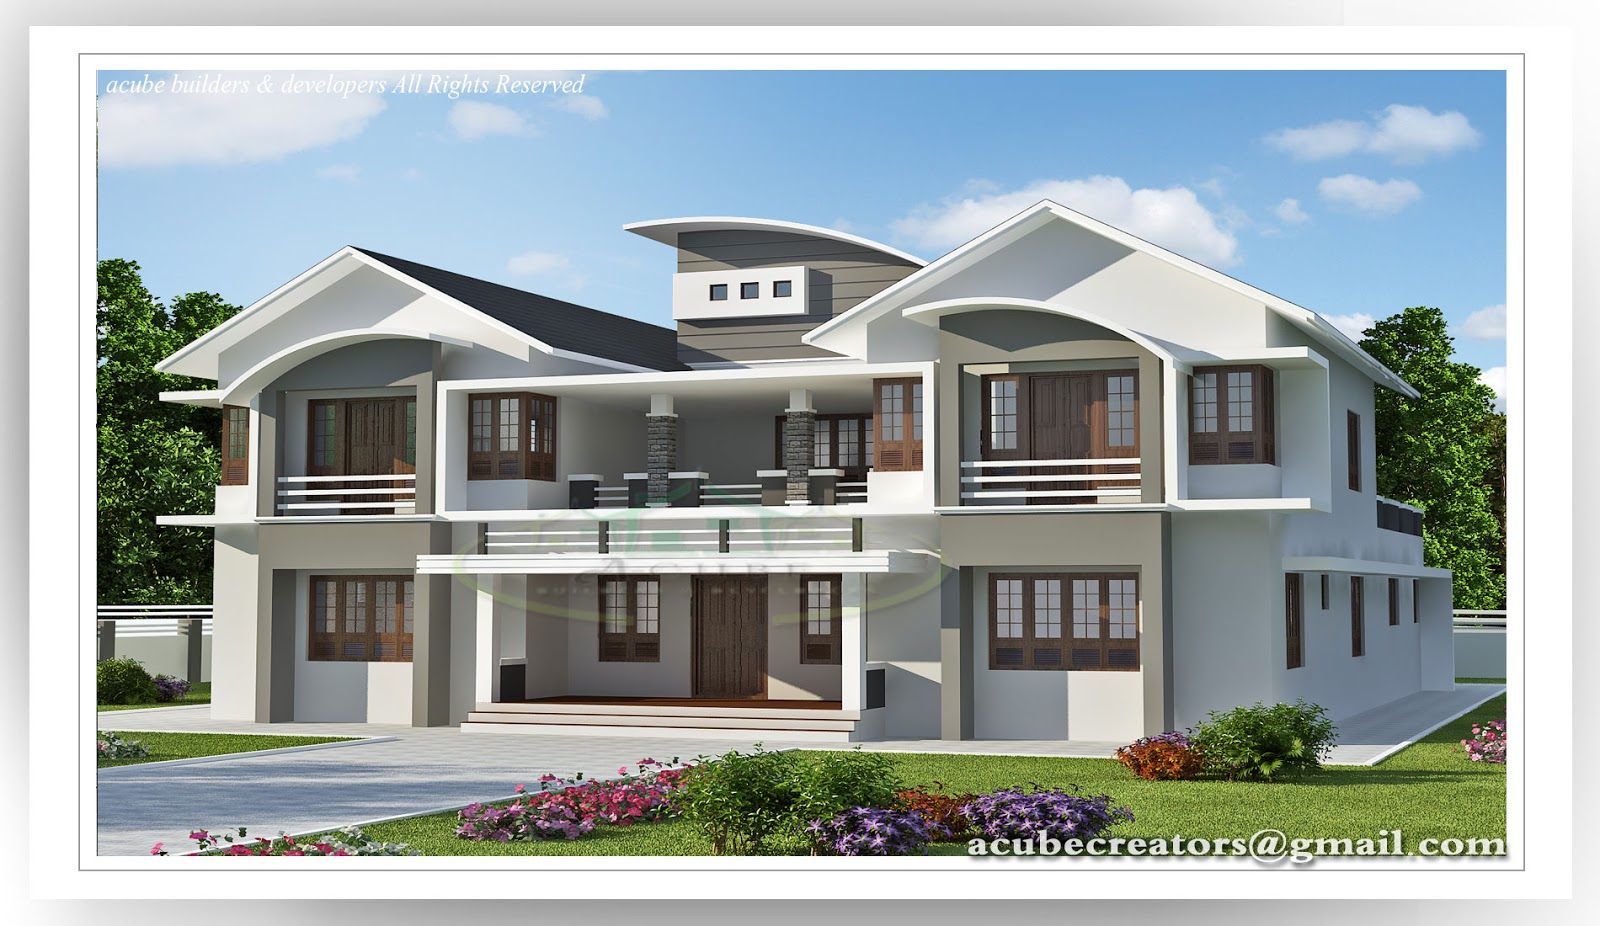 6 bedroom luxury villa design 5091 plan 149 for New build 4 bed house